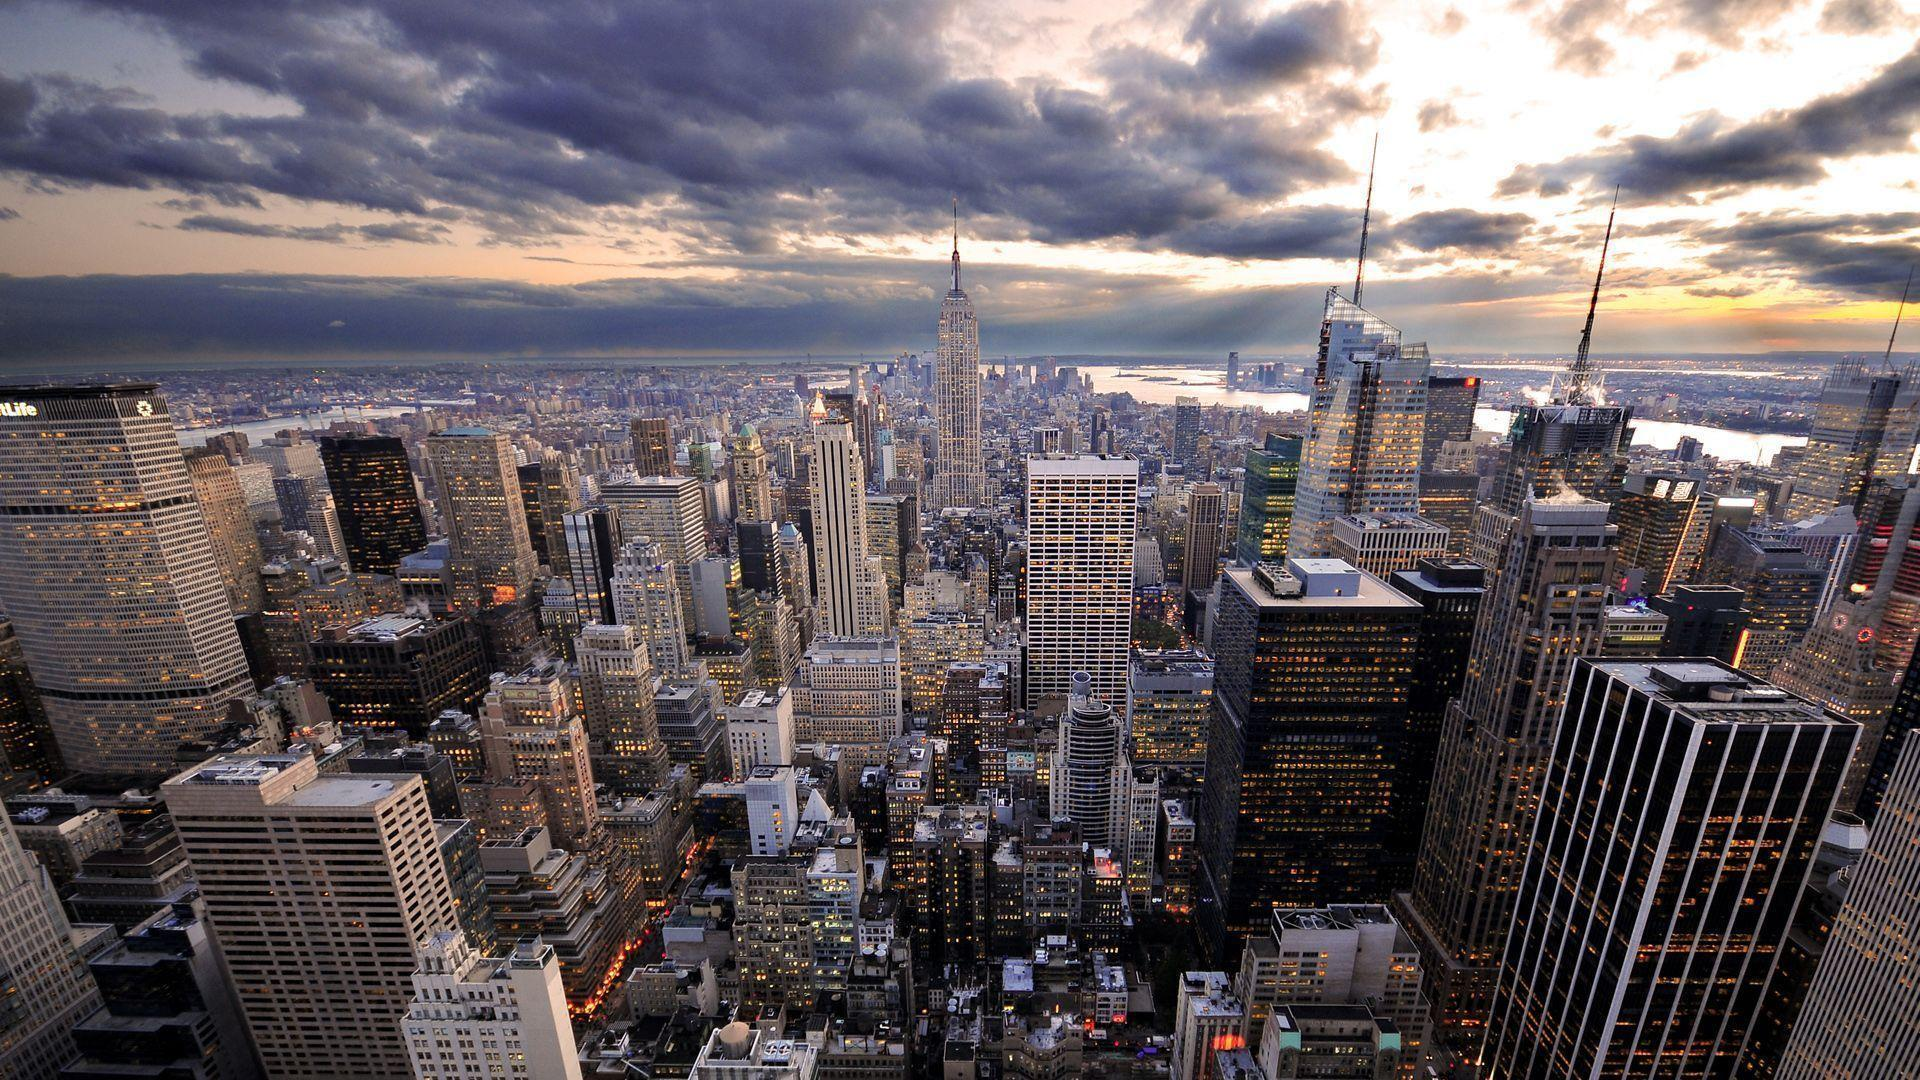 nyc hd wallpaper, new york skyline hd wallpapers